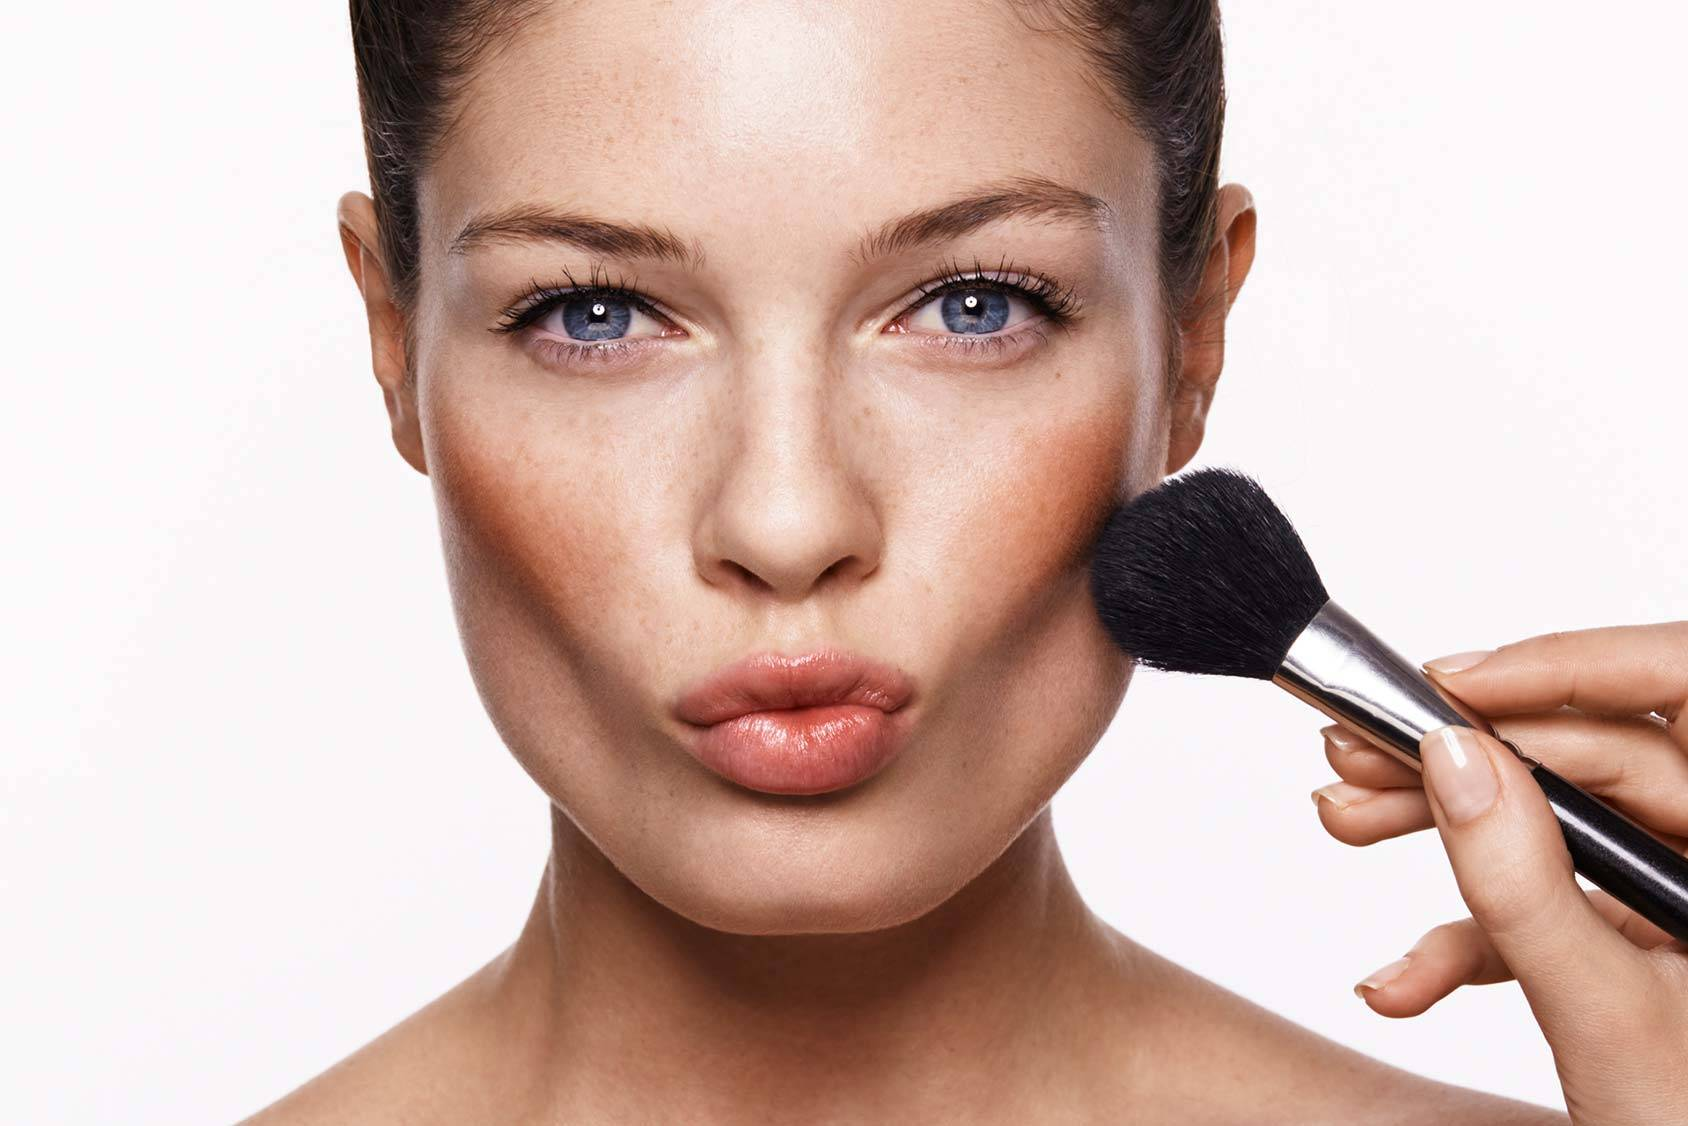 Sculpting: la nuova tecnica make up che scolpisce i lineamenti